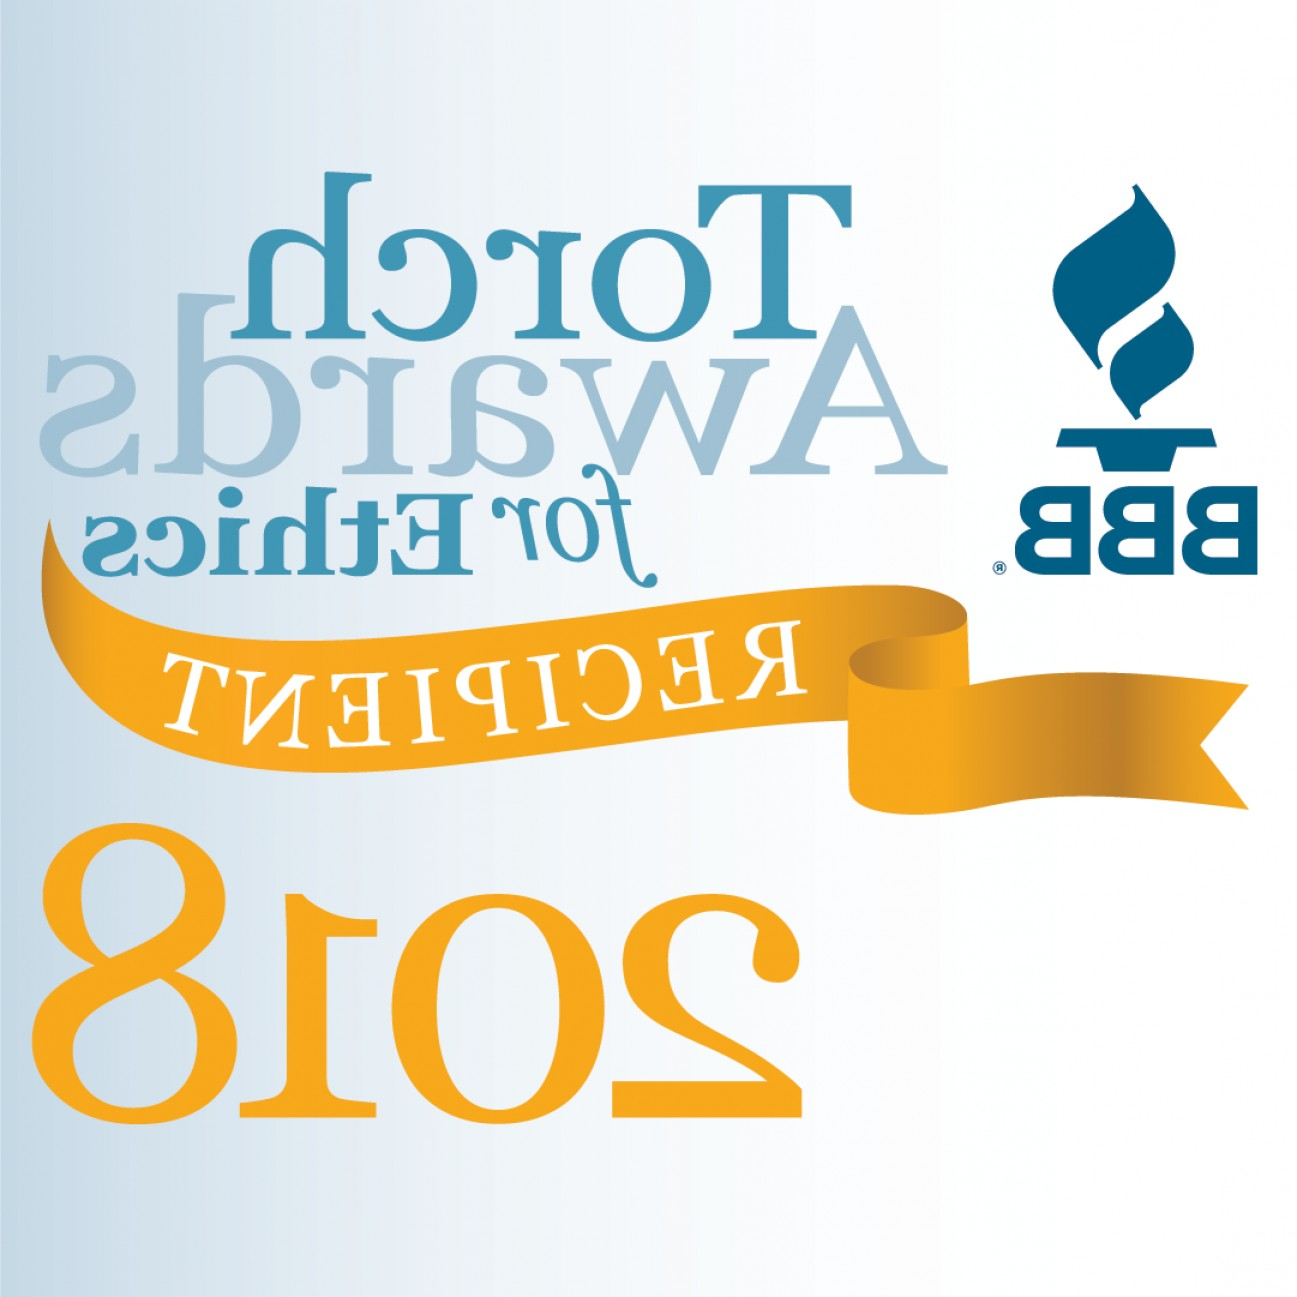 BBB Logo In Vector Form: Boundless Wins Business Year Torch Award Ethics Bbb